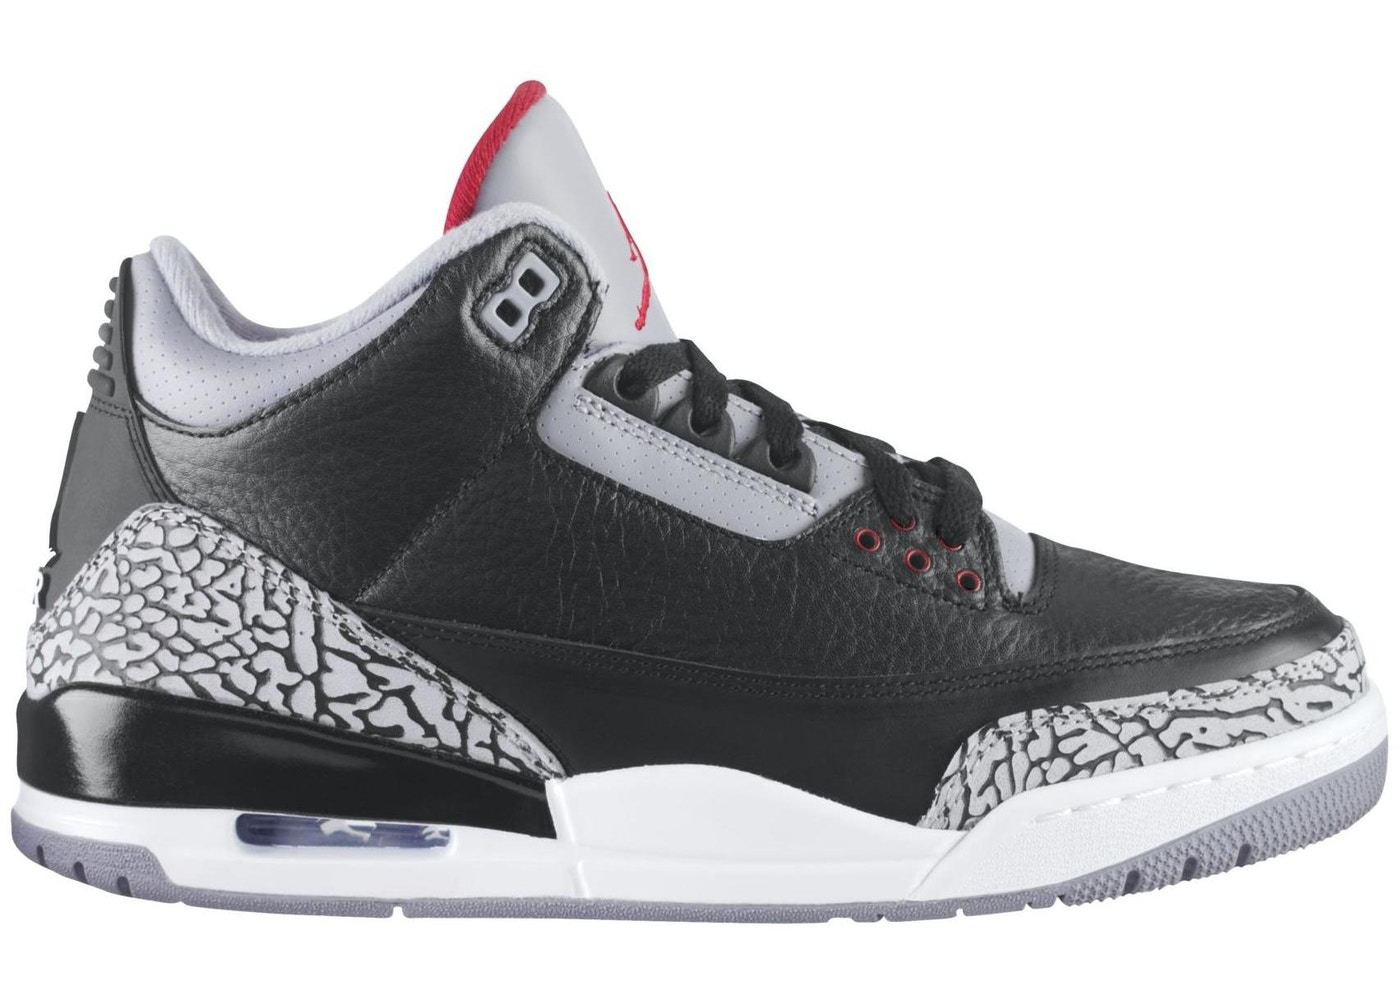 the latest 87534 4a5d4 Jordan 3 Retro Black Cement (2011)